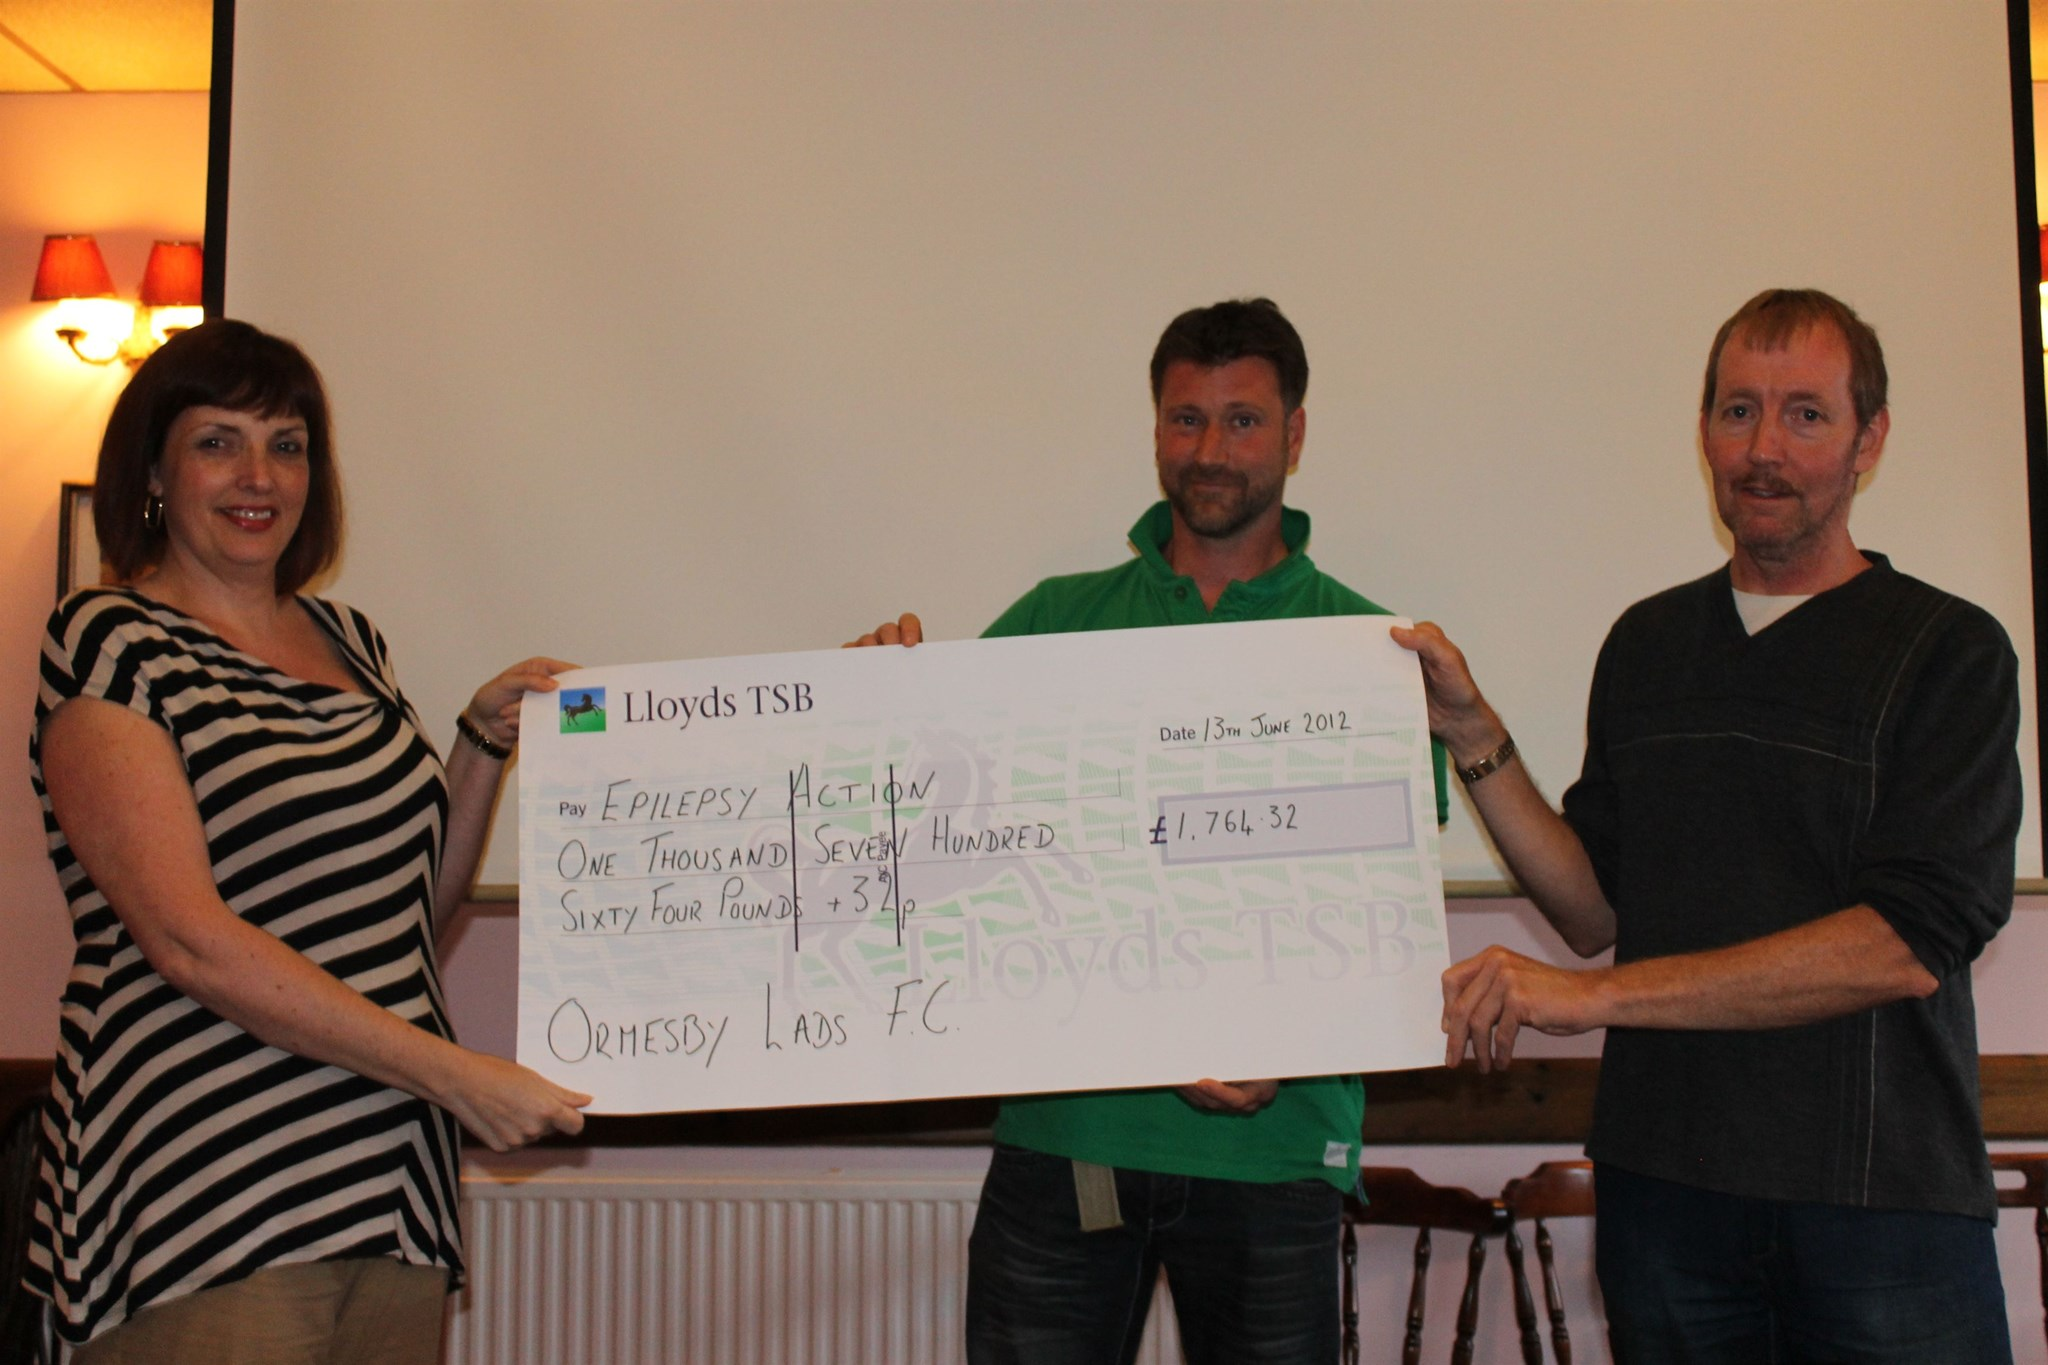 Presentation of cheque to Thomasina from Ormesby Lads FC following the 24hr marathon